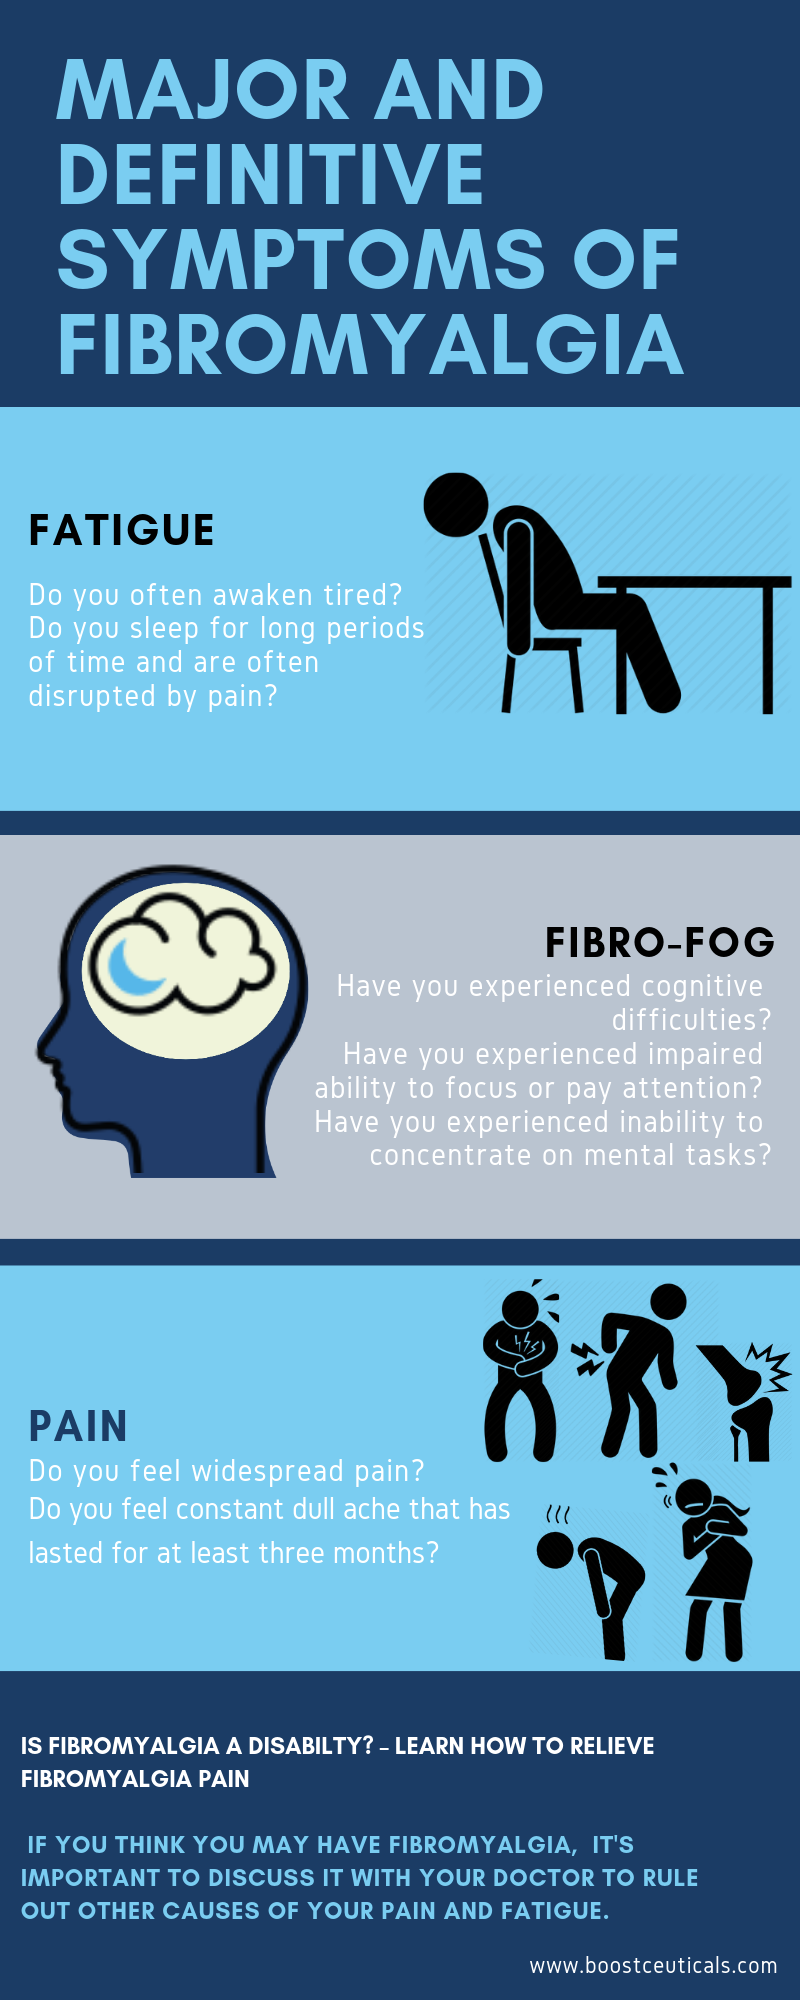 "Major and Definitive Symptoms of Fibromyalgia include:  ·         Fatigue. People with Fibromyalgia often awaken tired. They report sleeping for long periods of time but often this sleep is disrupted by pain.  ·       Cognitive difficulties. Sometimes referred to as ""fibro fog"" you have impaired ability to focus, pay attention or the ability to concentrate on mental tasks.  ·         Pain. The pain associated with Fibromyalgia is often described as a constant dull ache that has lasted for at least three months.  To see a more detailed Fibromyalgia symptoms list, visit this site - https://cfsunravelled.com/mecfsfibromyalgia-symptoms-list/.   Generally, Fibromyalgia is a tough condition to deal with and is an illness of pain."